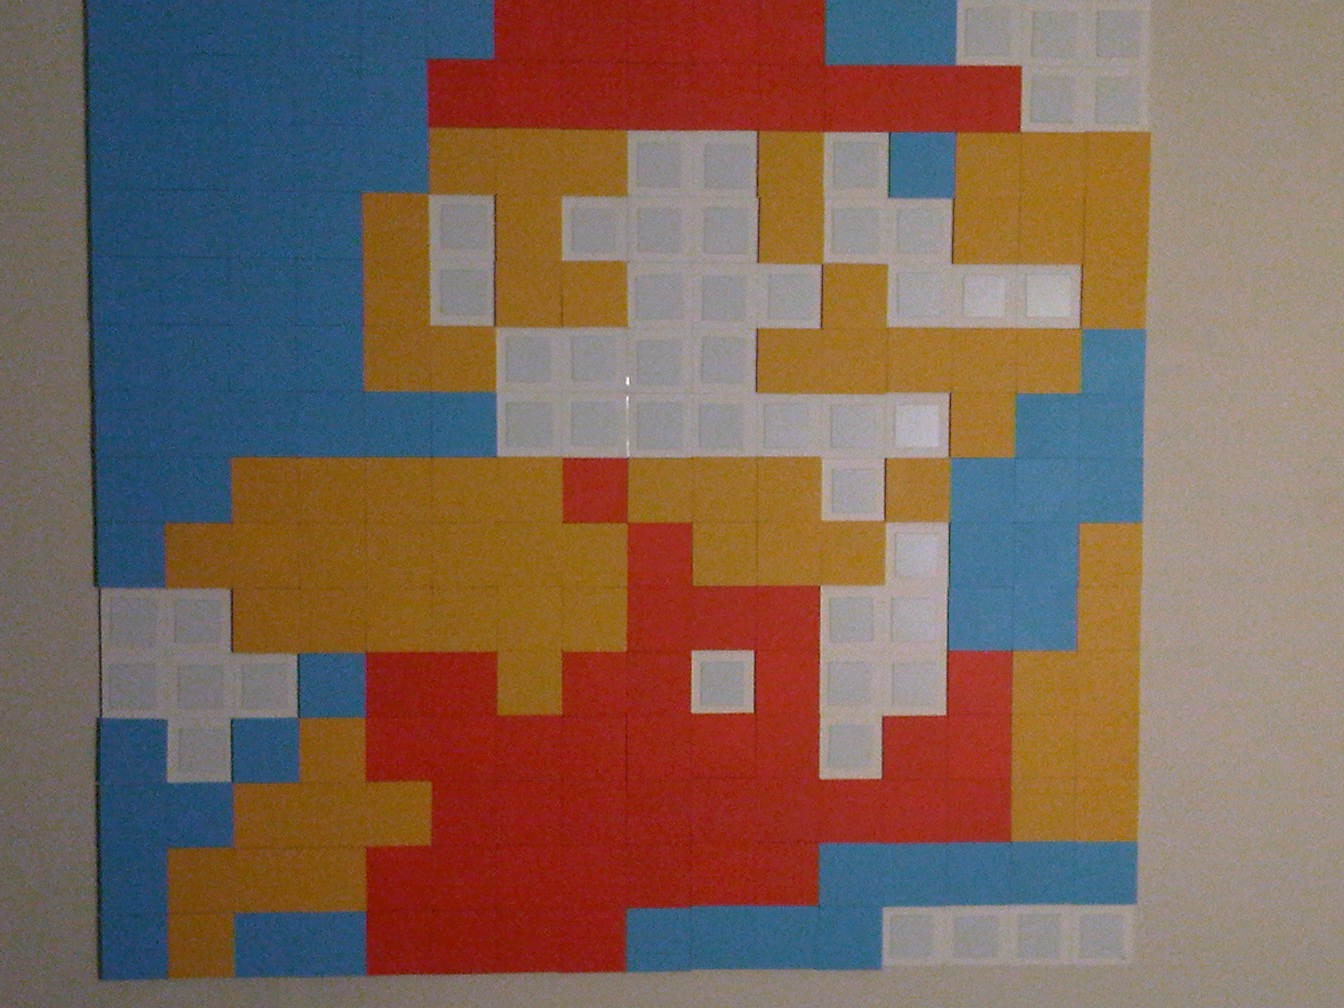 First incarnation of mario 8 bit living - Pictures of 8 bit mario ...